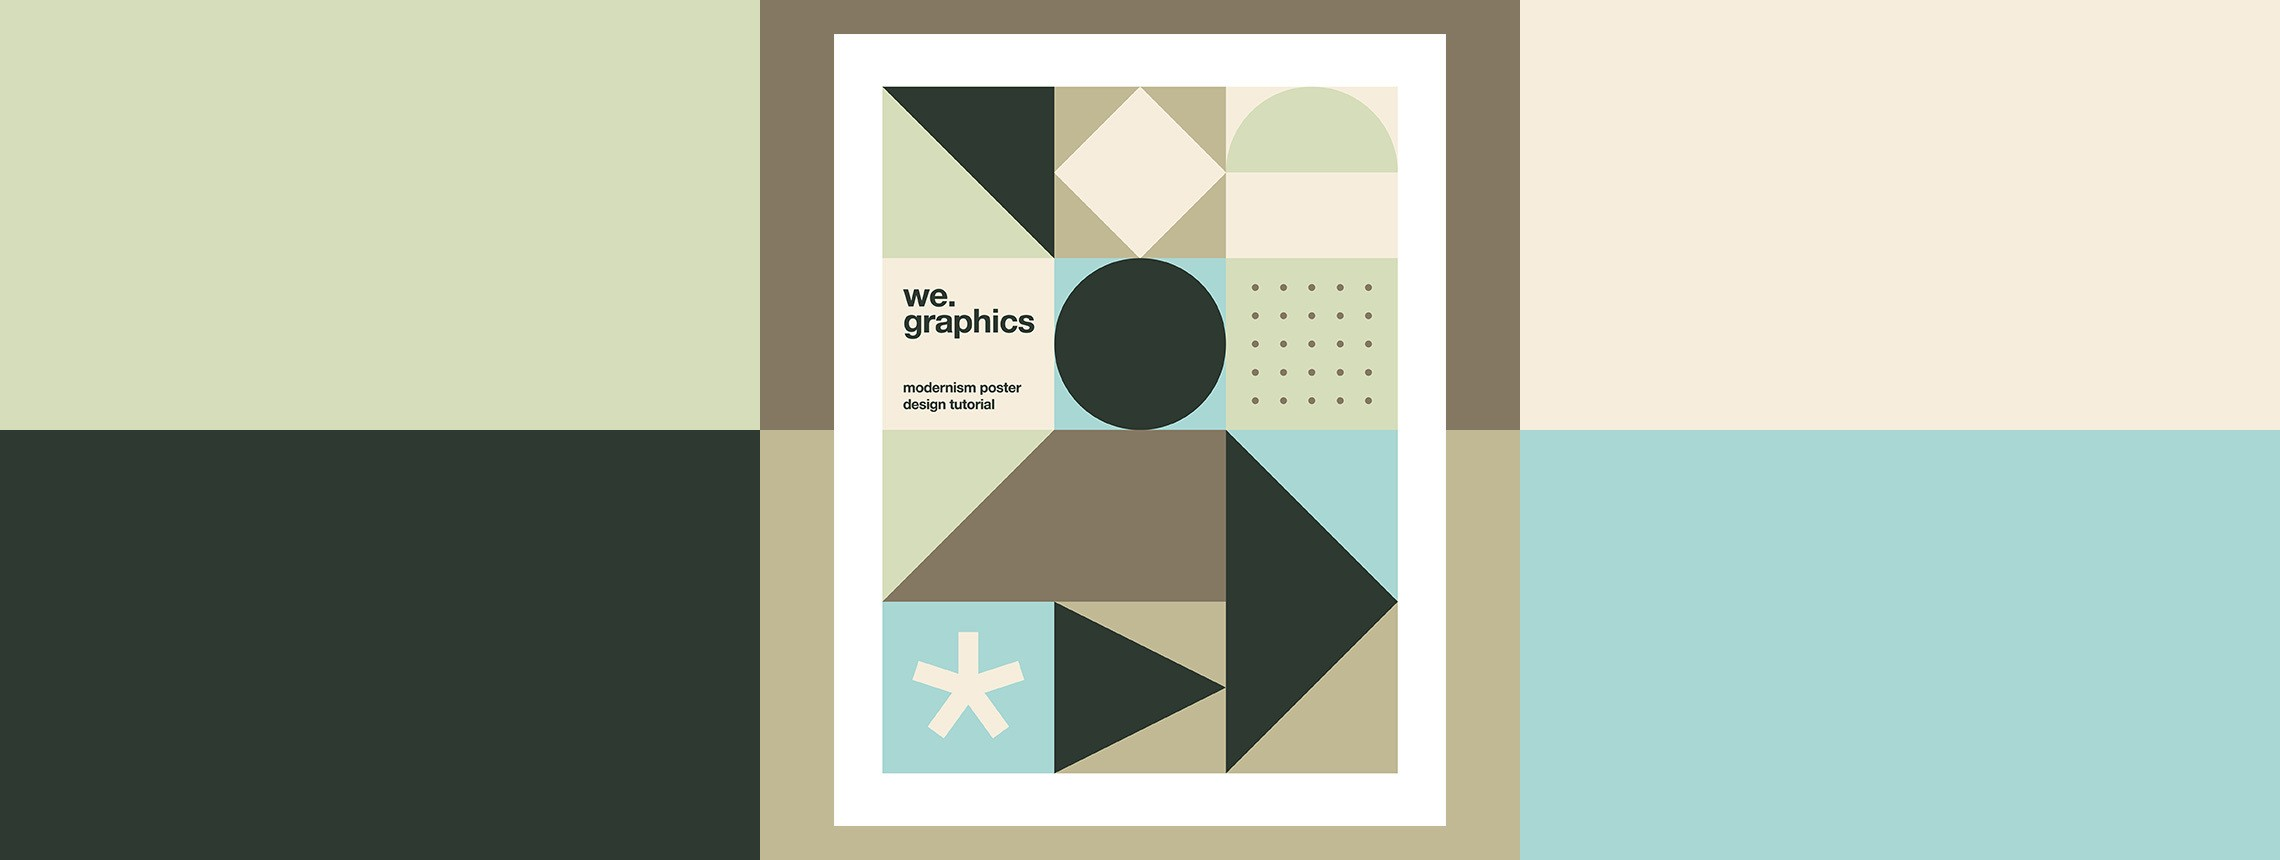 Design a Modernism Inspired Poster from Scratch with Illustrator